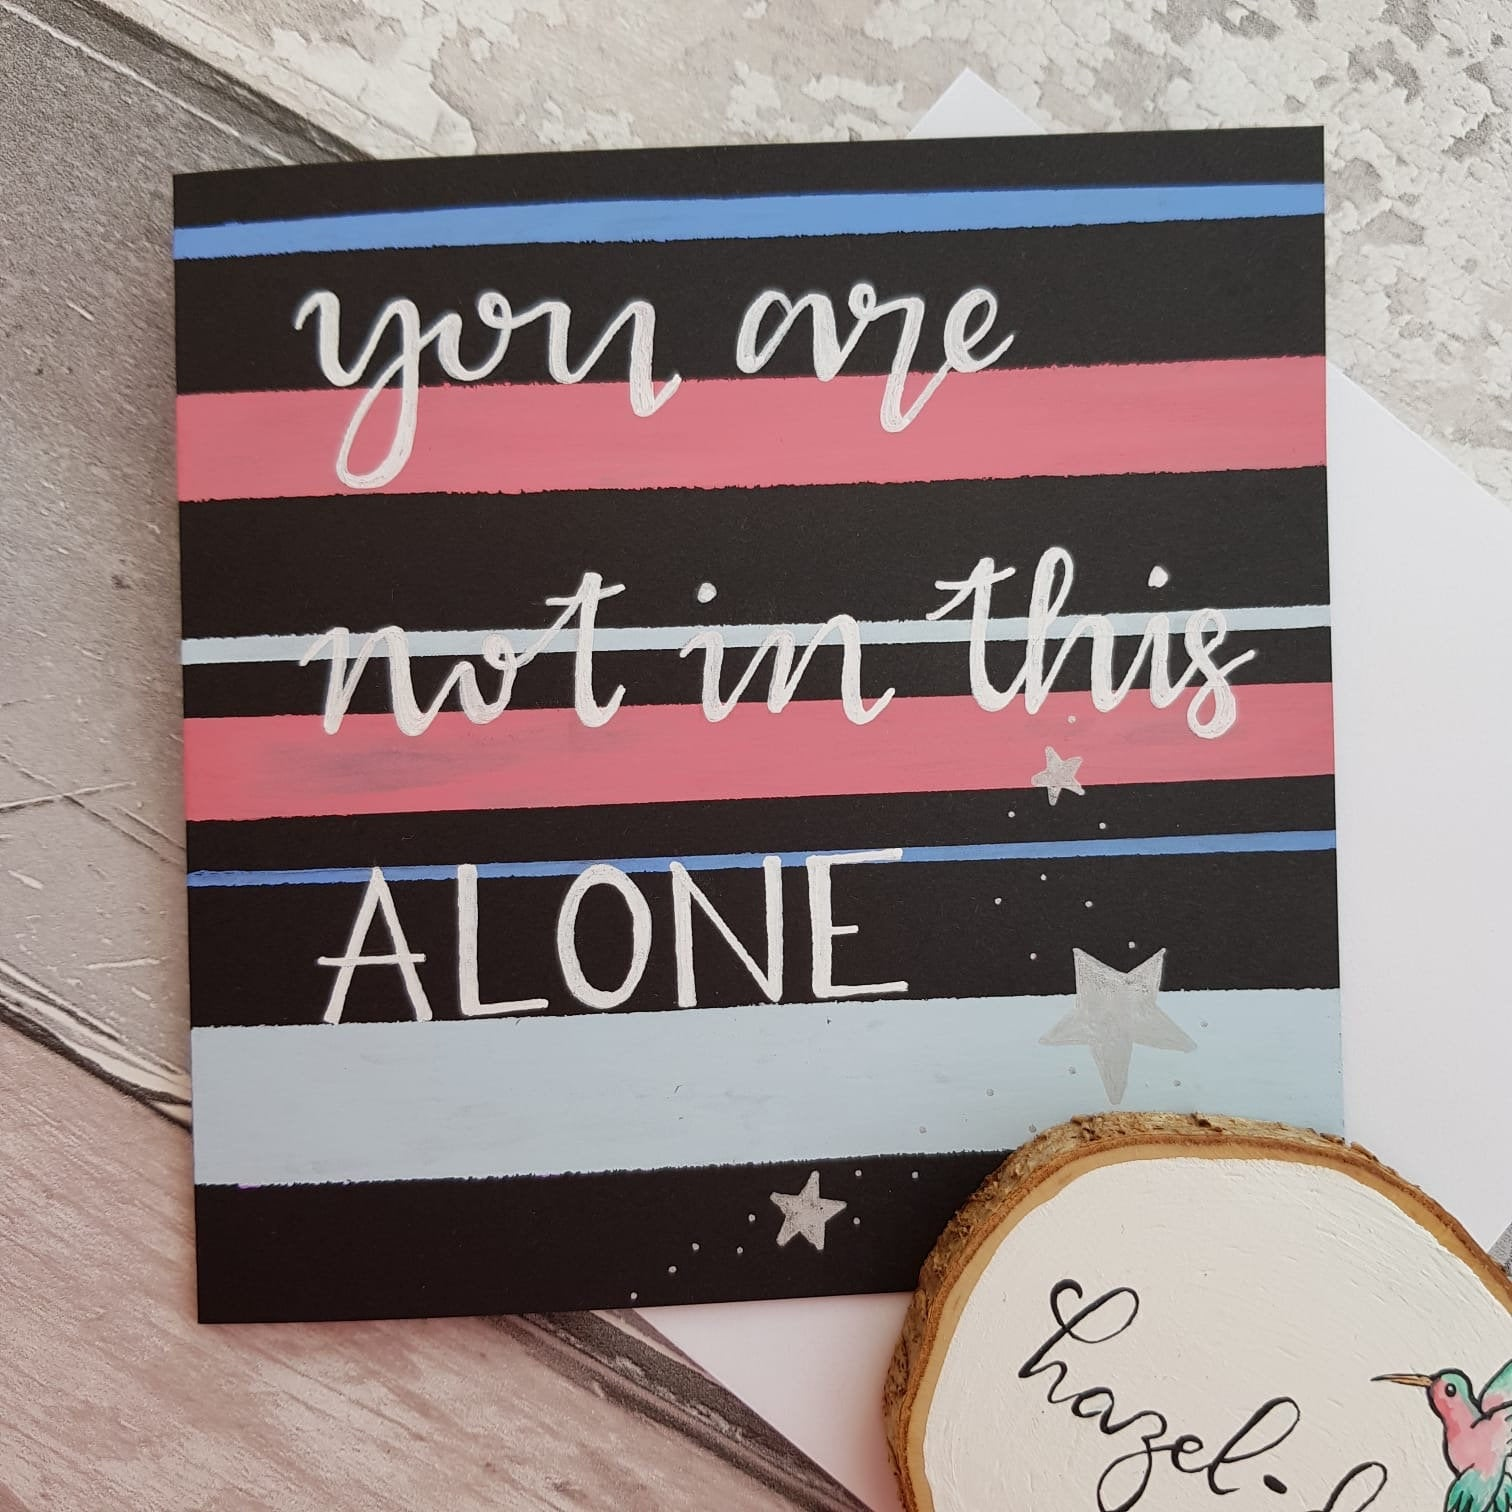 'You Are Not Alone' Card for Friendship, Motivation, Support – Hand Drawn Kind Shop 3